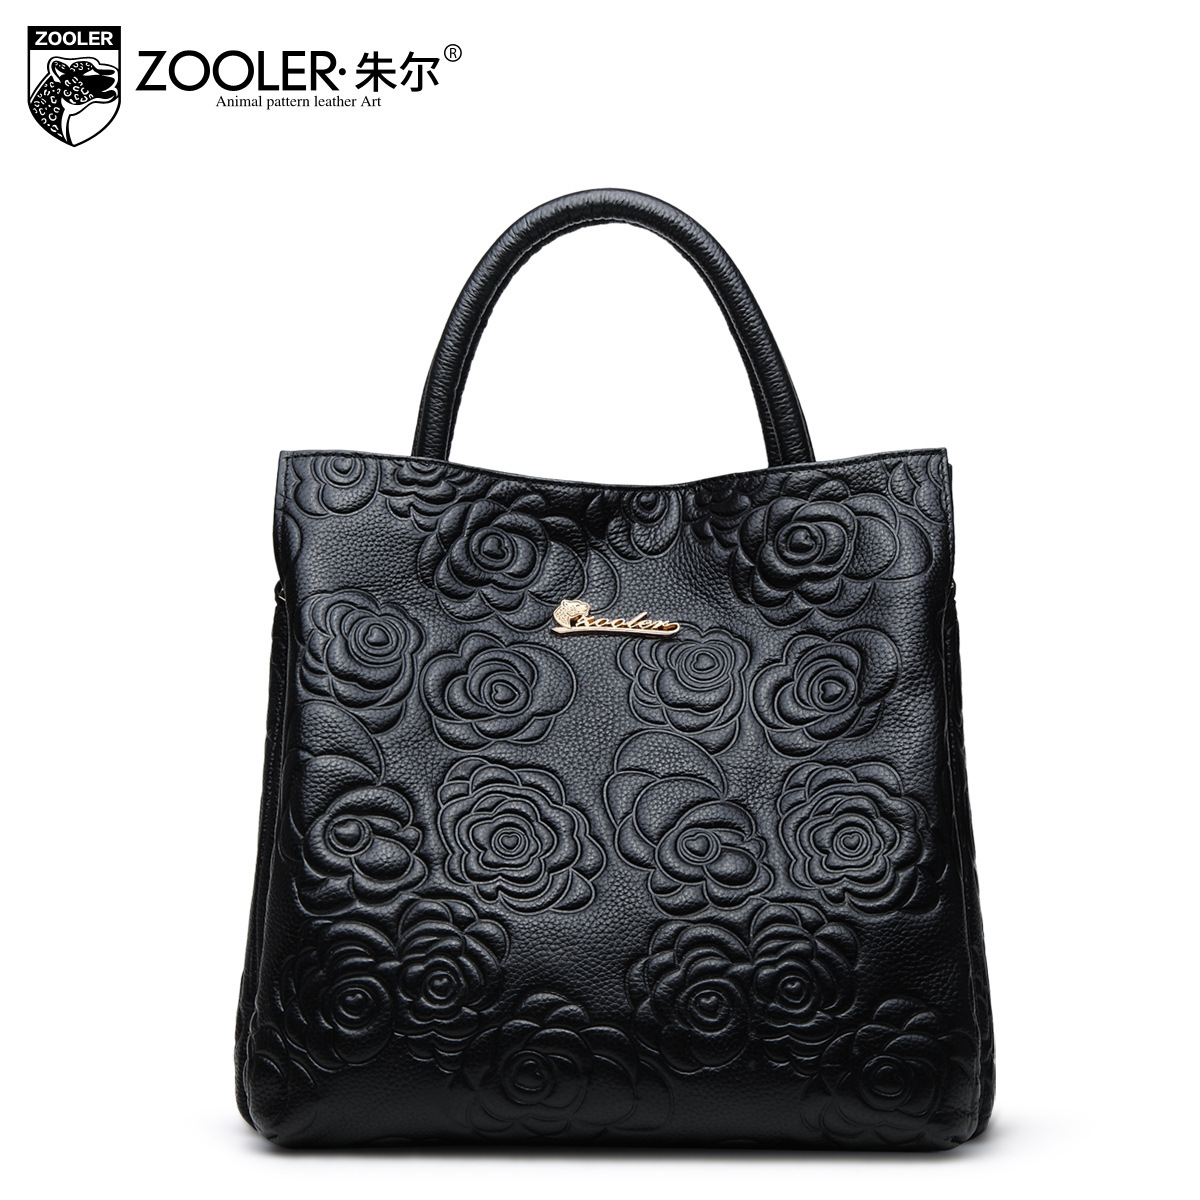 ZOOLER Bags Handbags Women Famous Brands Genuine Leather Handbag Women Crossbody Shoulder Messenger Bags Female Floral Tote Bag